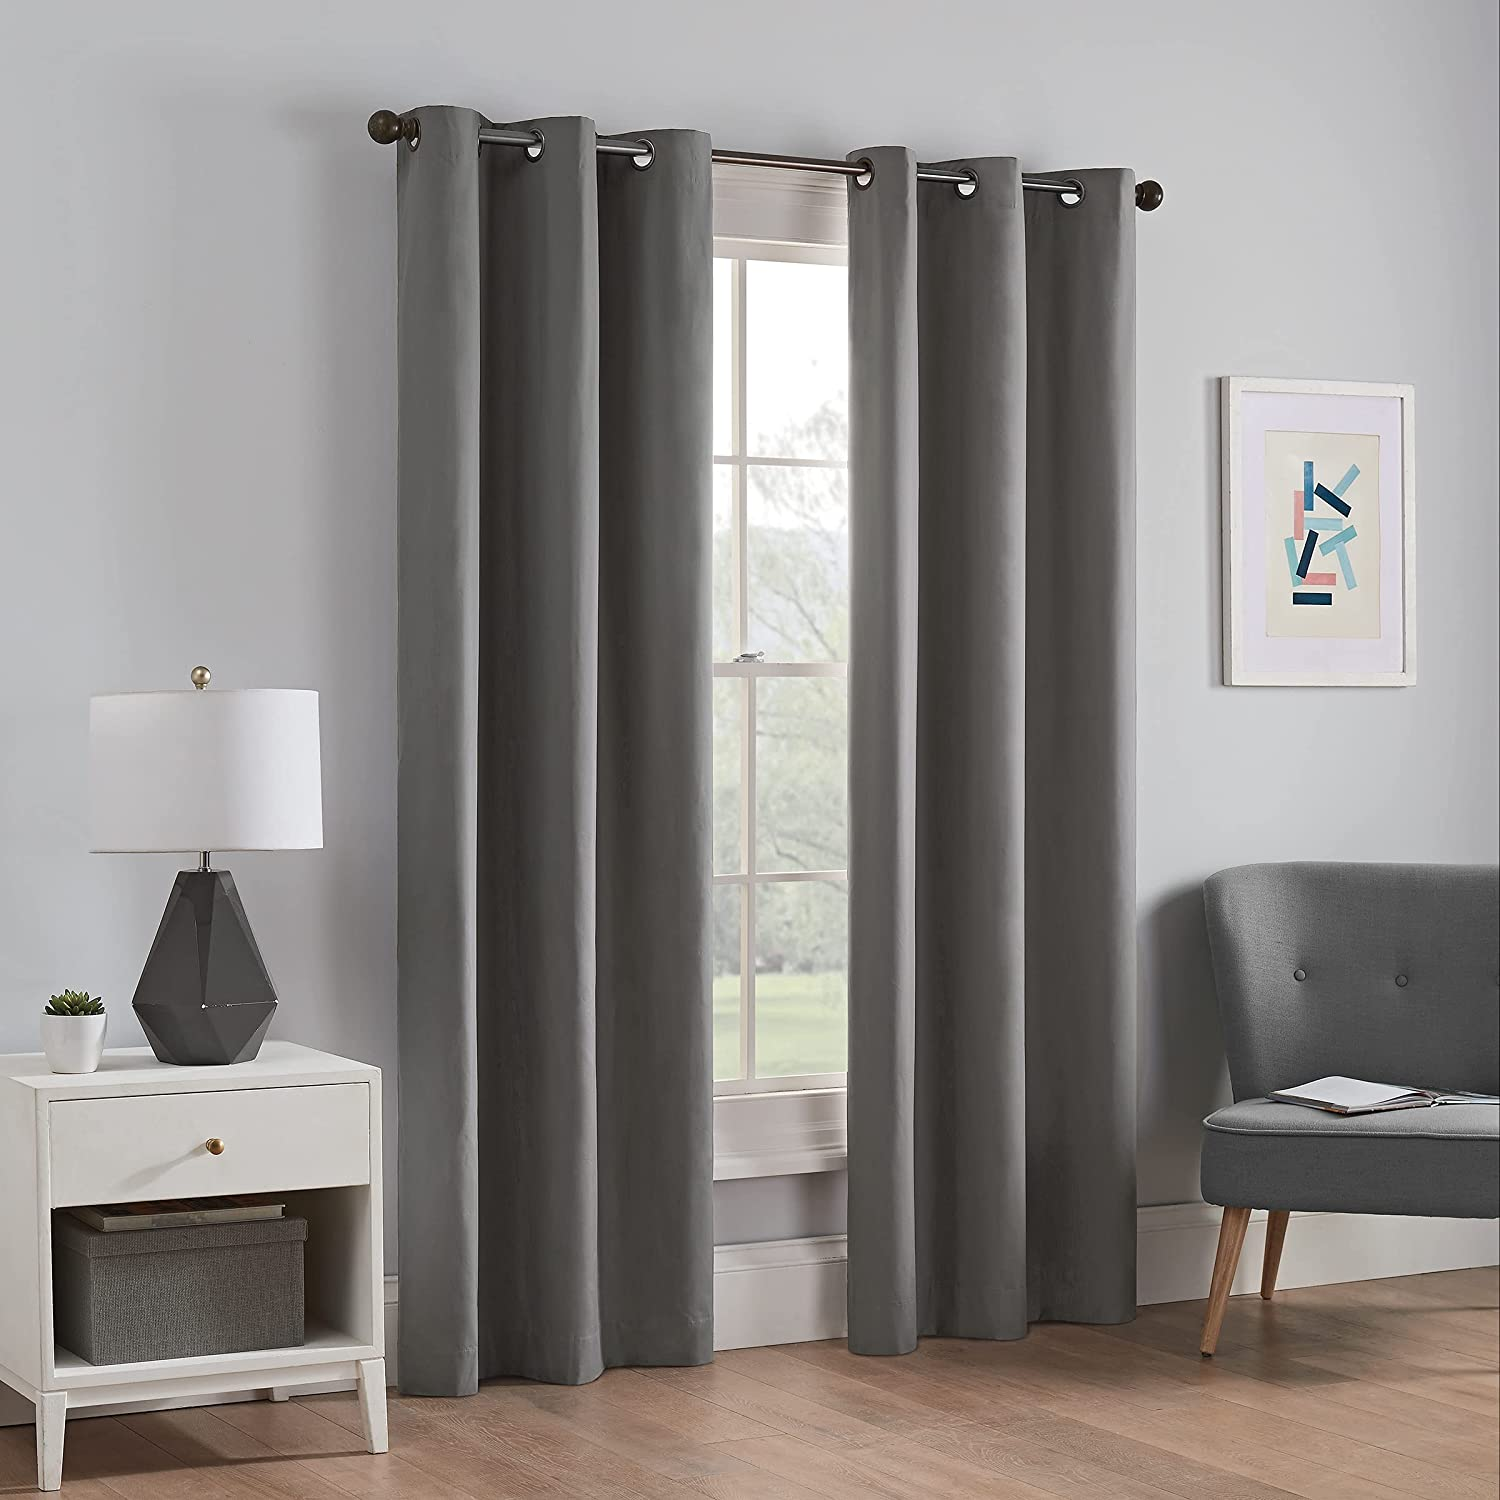 ECLIPSE Microfiber Thermal Insulated Single Panel Grommet Top Darkening Curtains for Living Room, 42